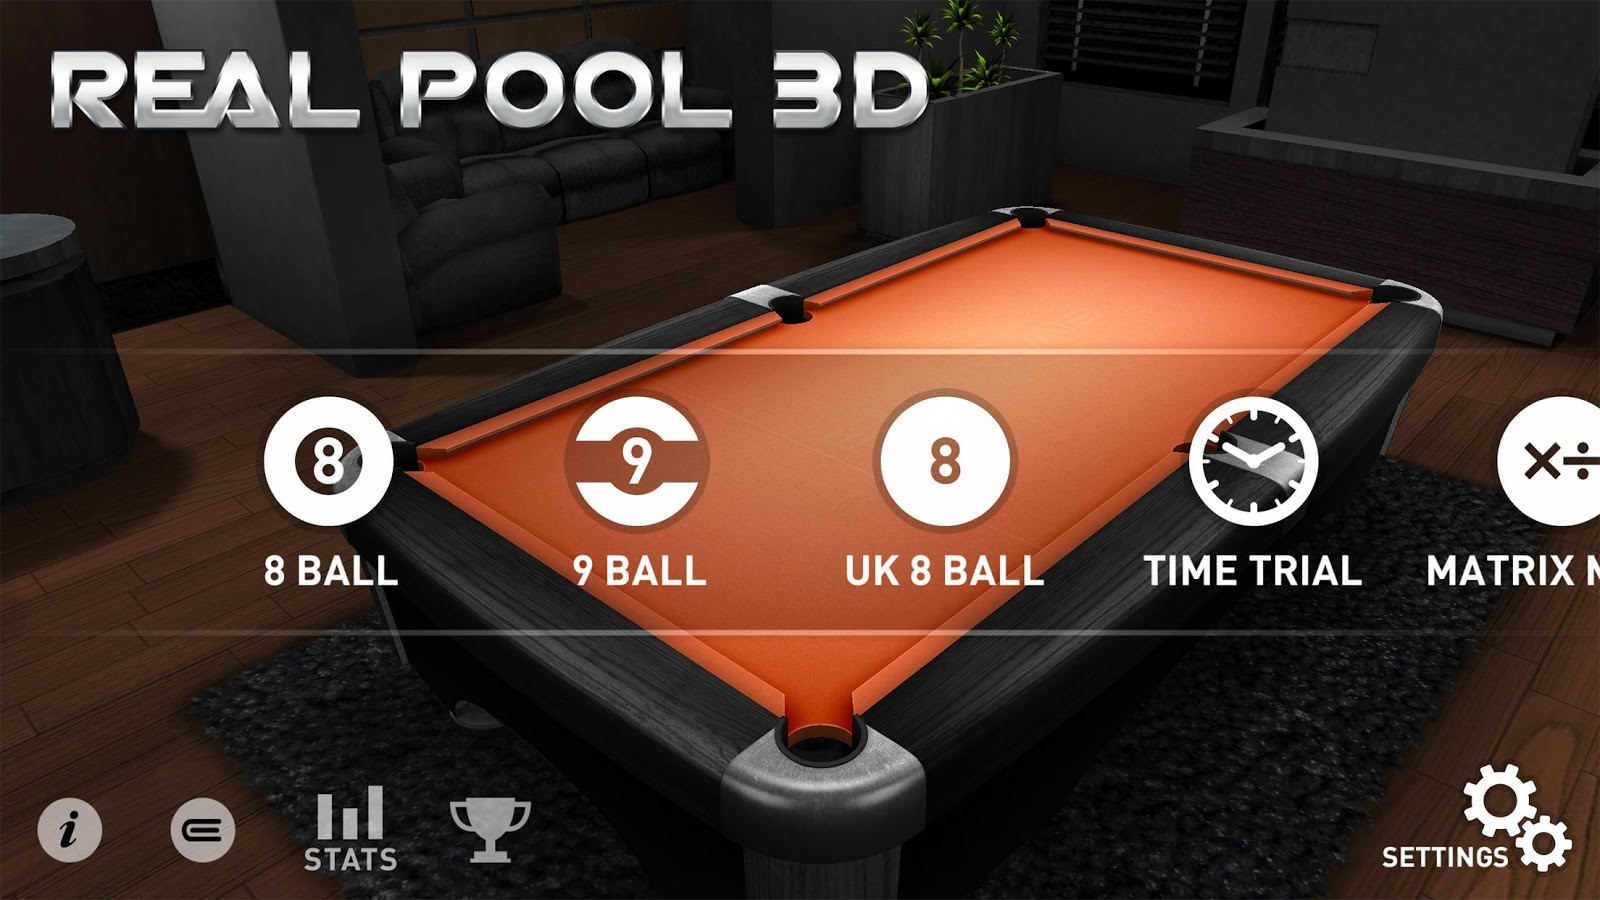 Real Pool 3D Screenshot 2